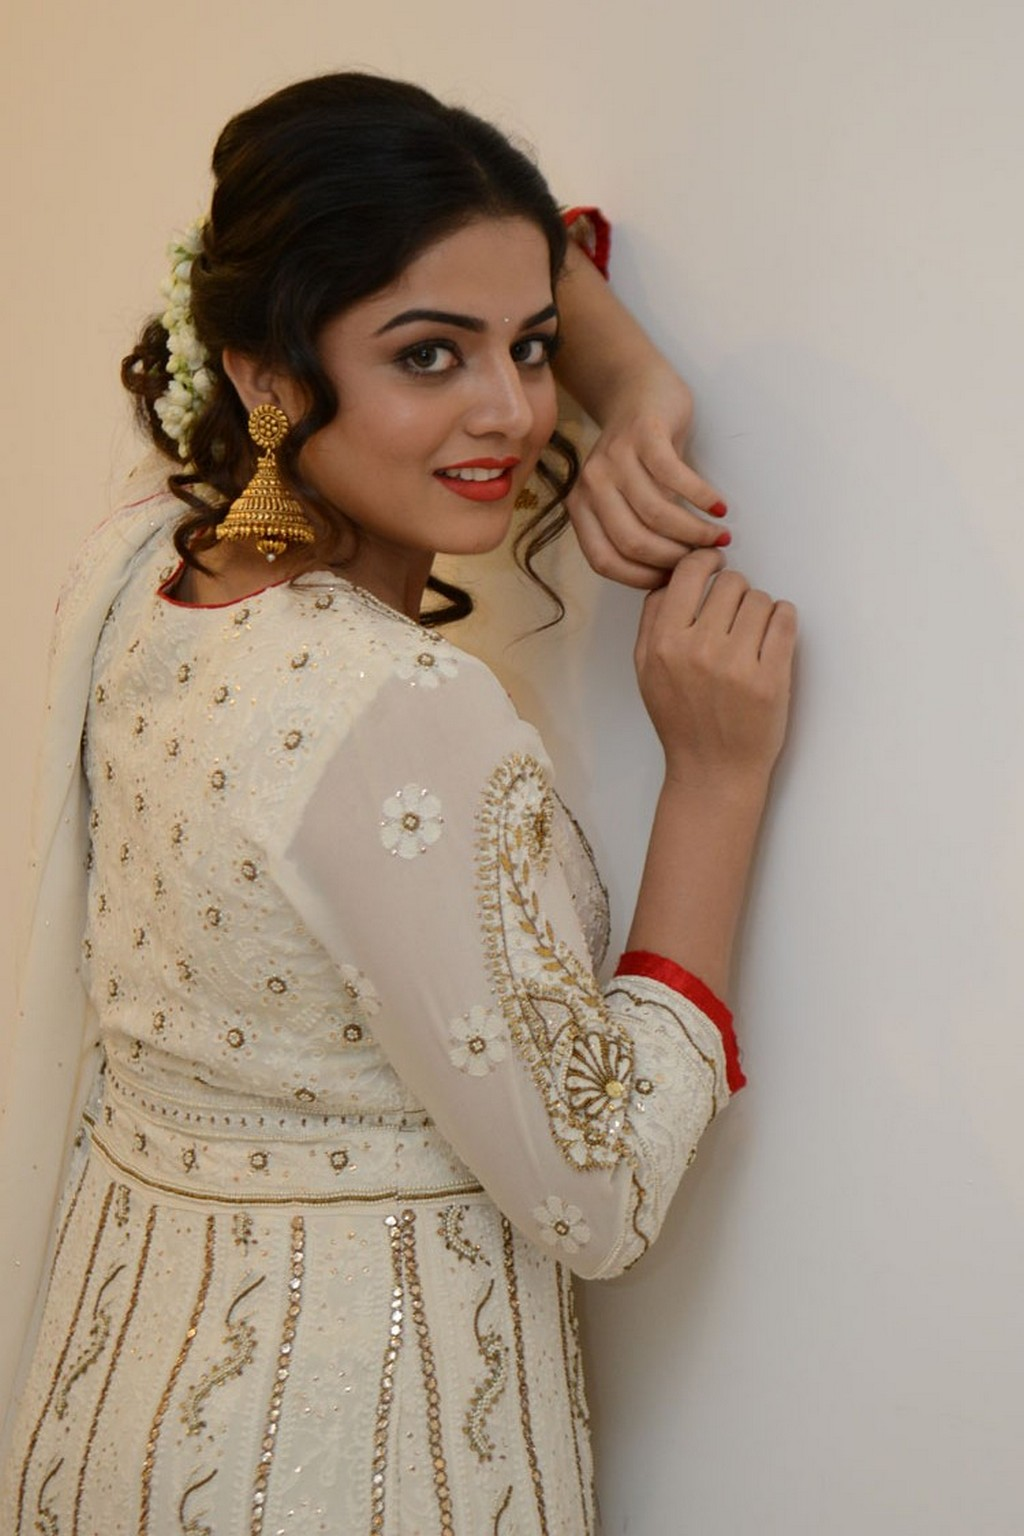 Glamours Actress Wamiqa Gabbi Hot Stills In White Dress